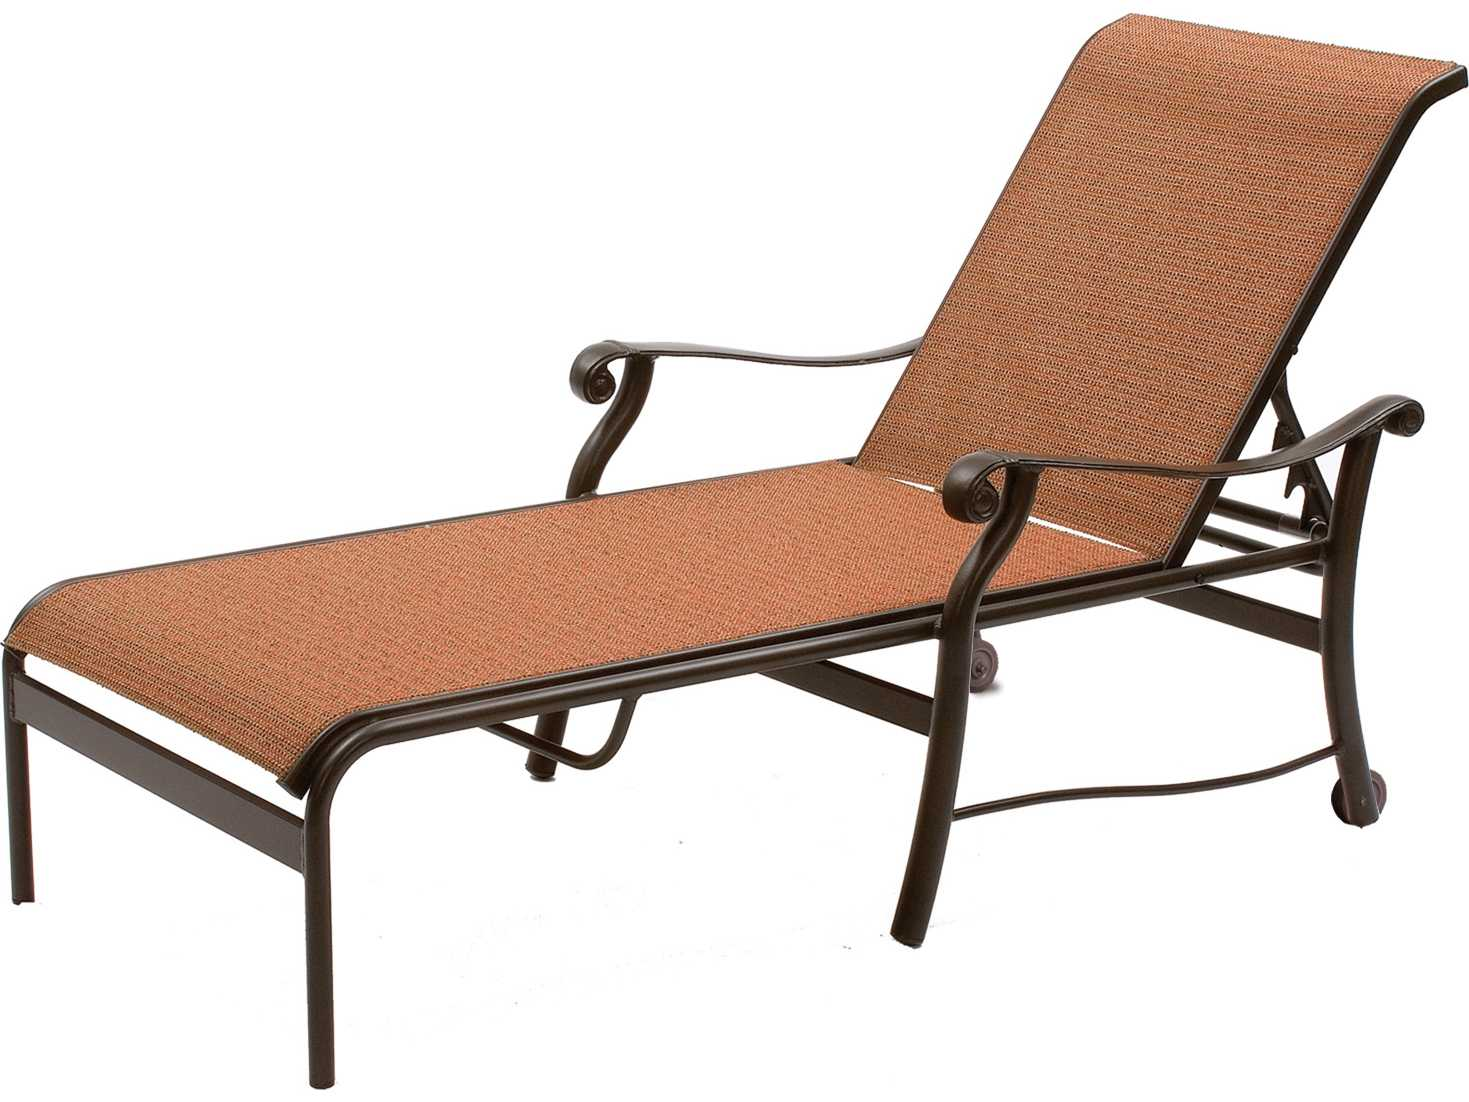 Suncoast rendezvous sling cast aluminum heavy chaise for Aluminum chaise lounge with wheels